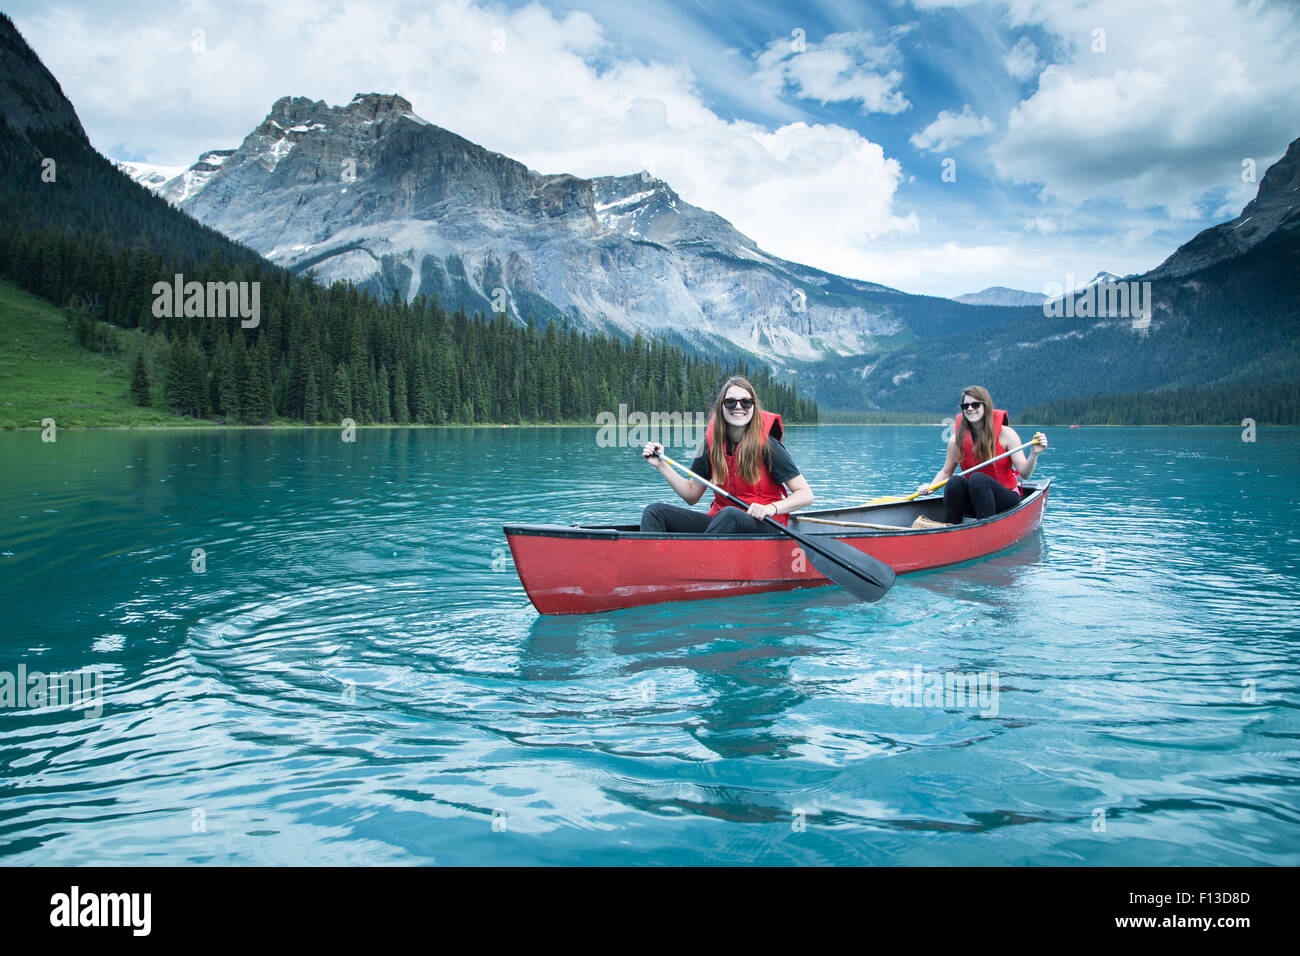 Deux filles kayak, le parc national Yoho, Colombie-Britannique, Canada Photo Stock